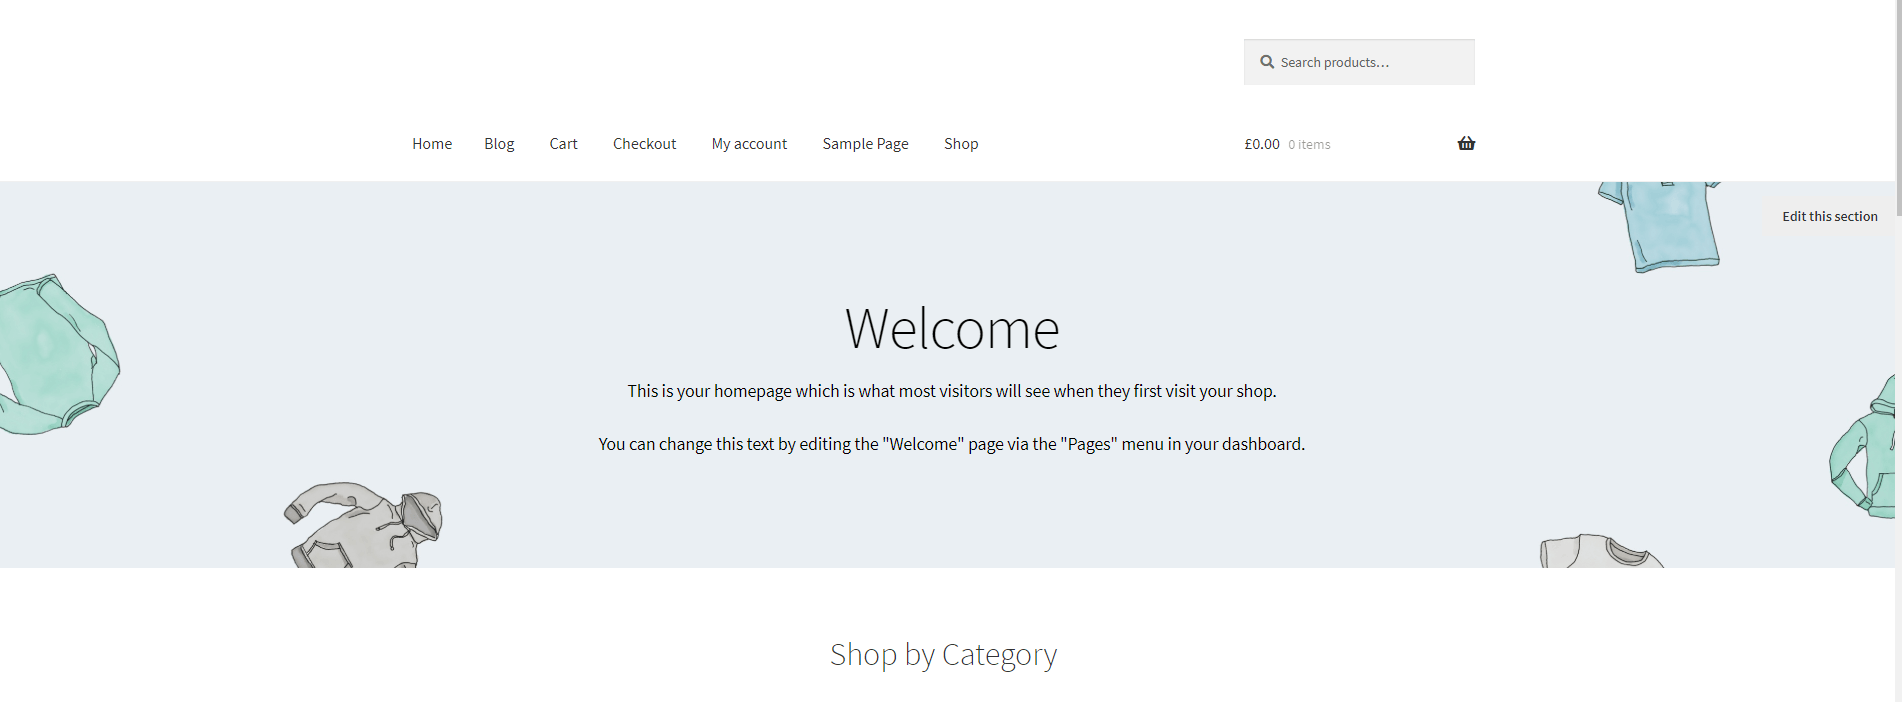 Basic Storefront Store Home Page